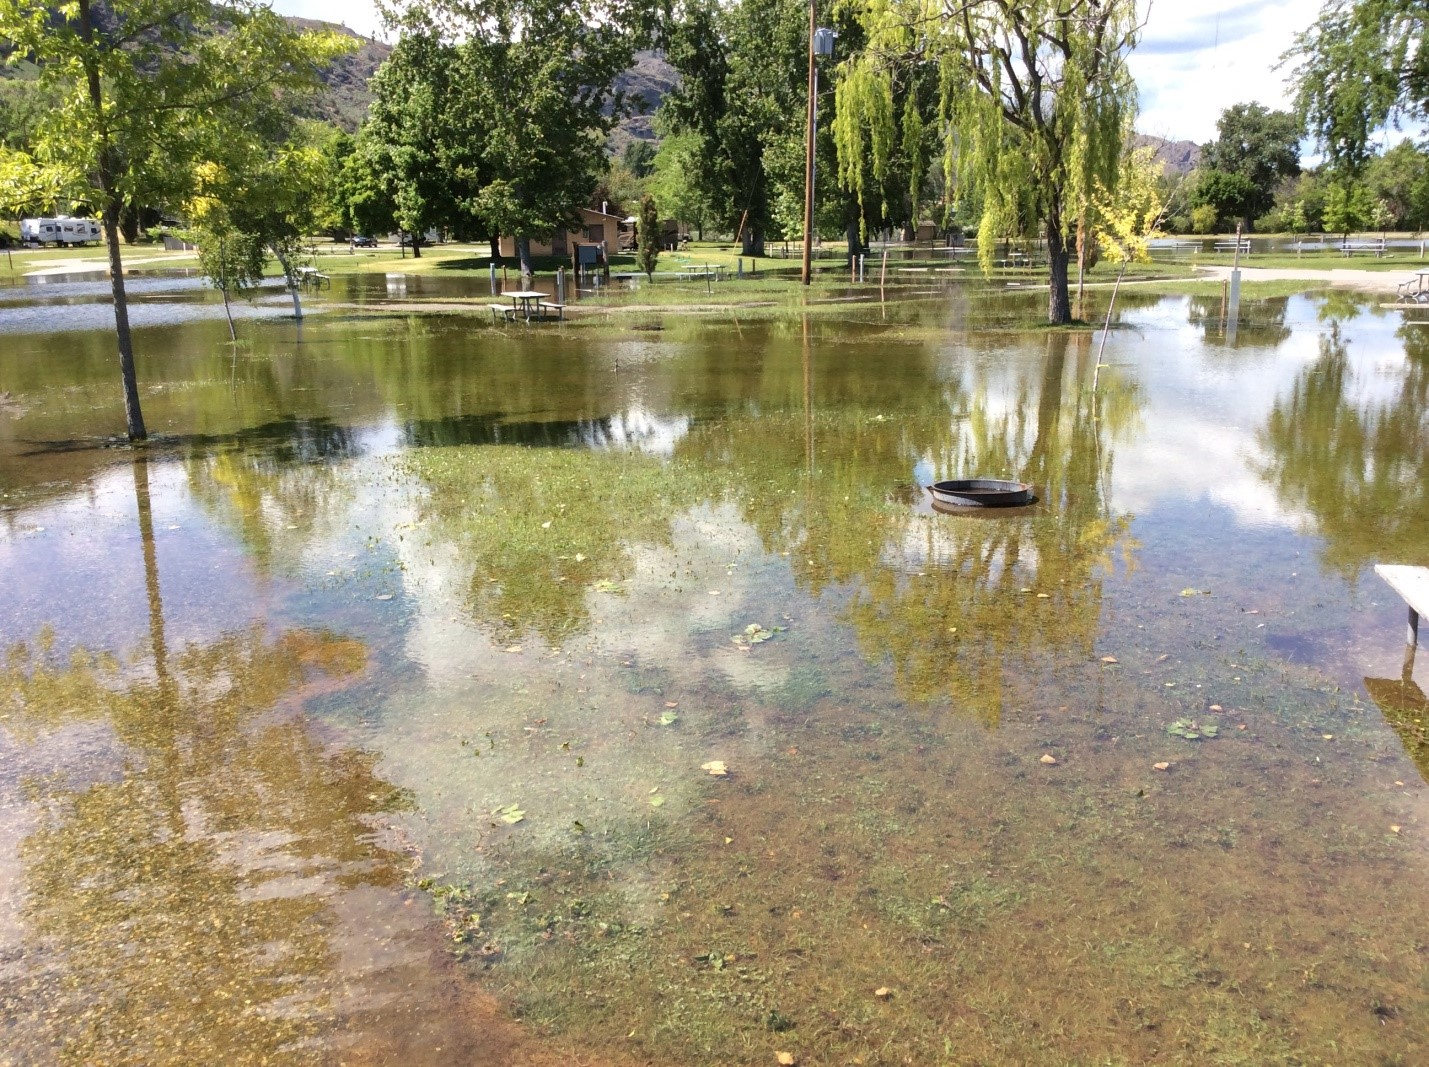 Floodwaters on Osoyoos Lake covered Veterans Memorial Park in Oroville, Washington, in early June. Waters entered communities throughout the Okanagan basin in Washington and British Columbia. Credit: Brian Symonds